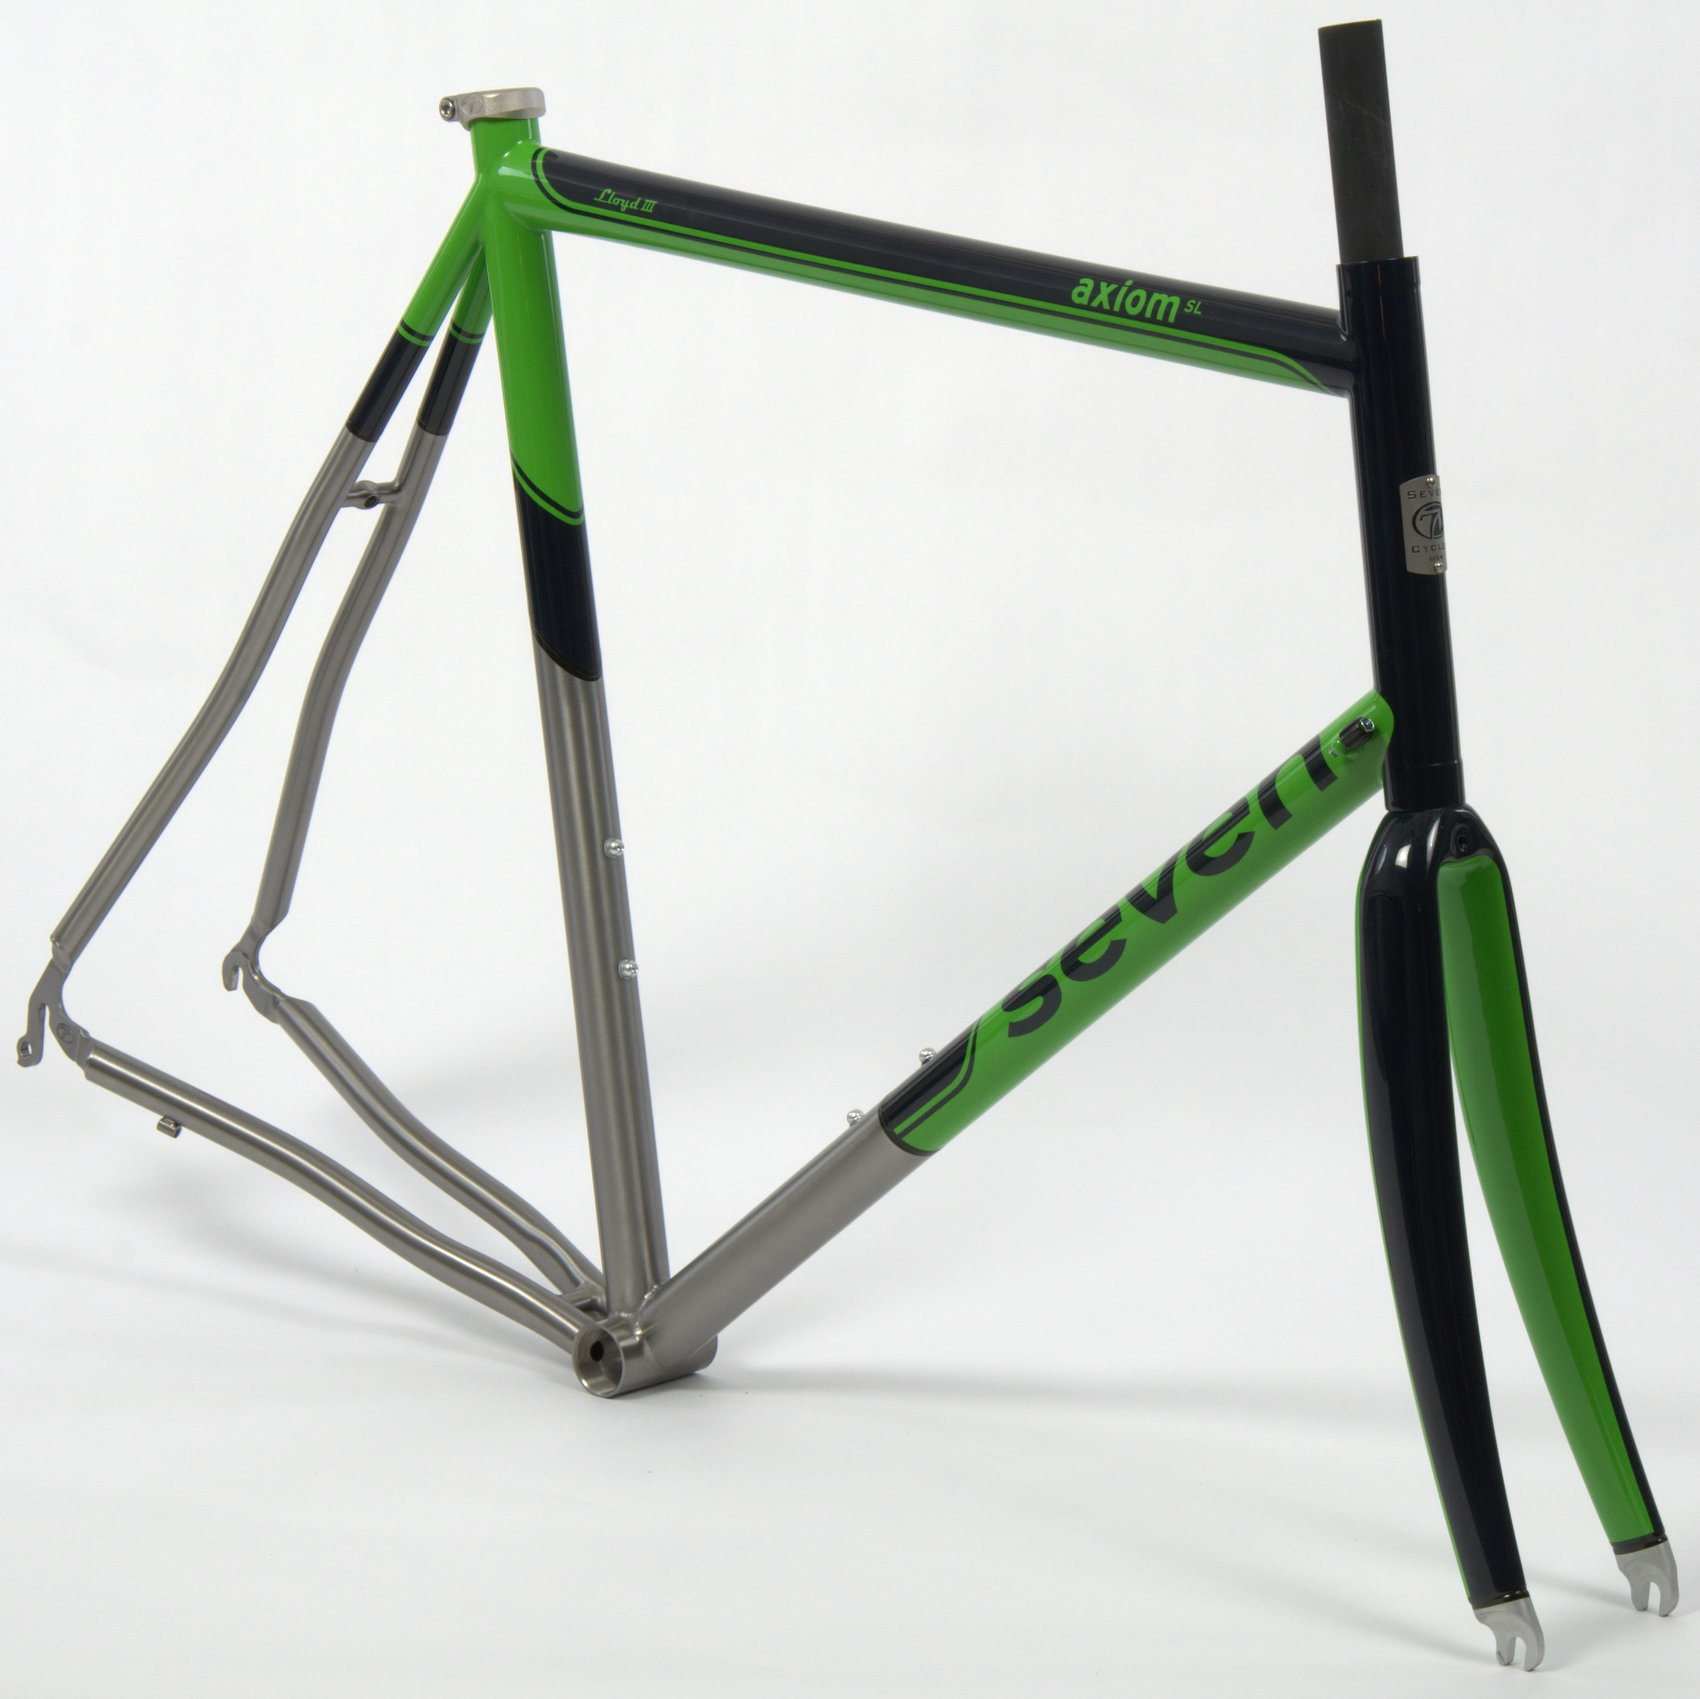 gloss black and custom green (available at an additional cost)